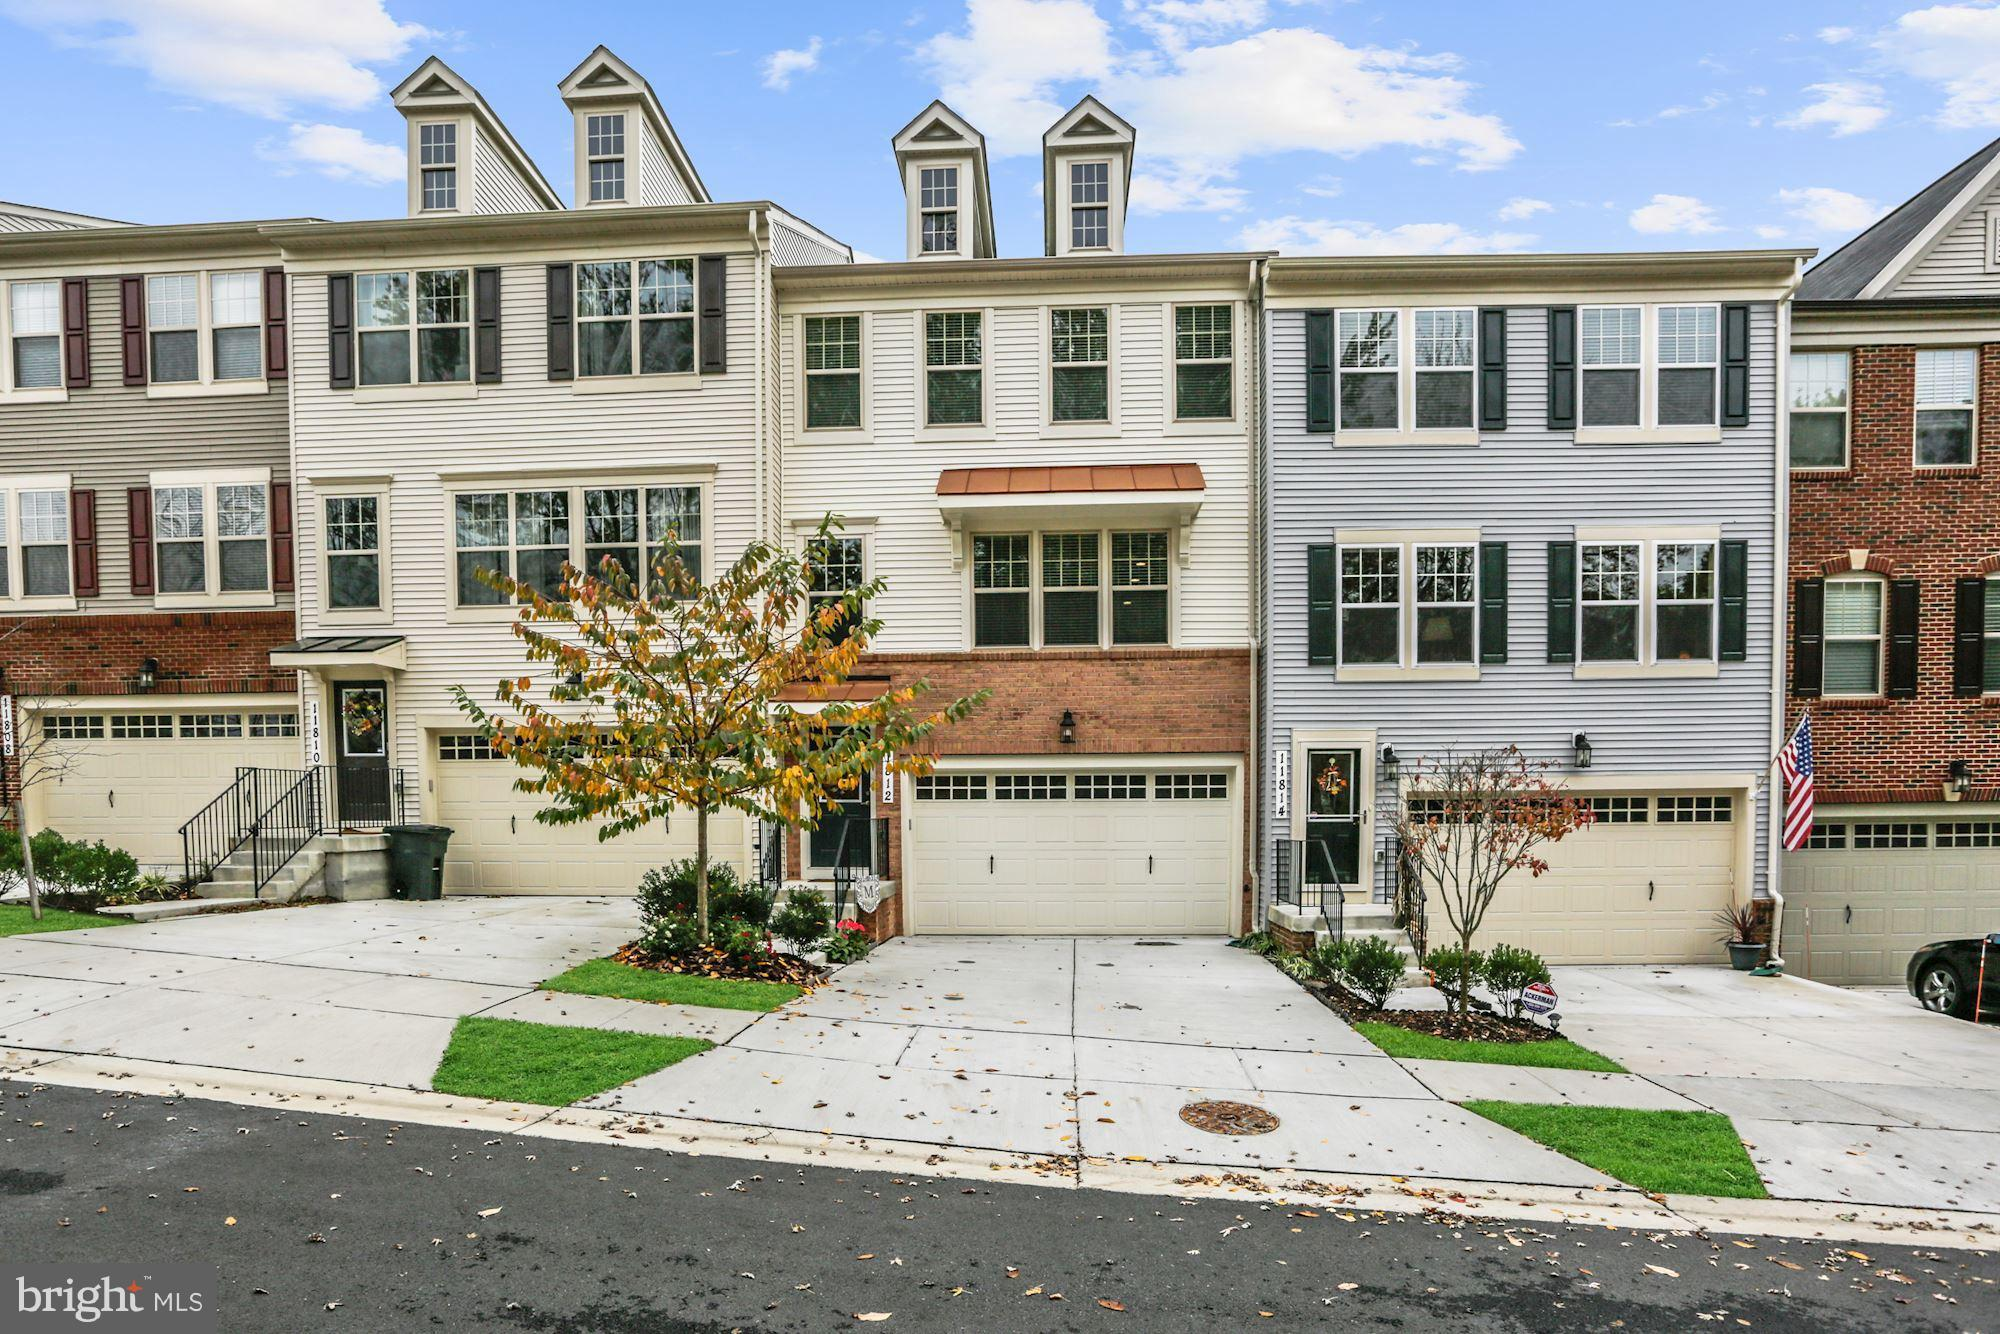 11812 BOLAND MANOR DRIVE, GERMANTOWN, MD 20876